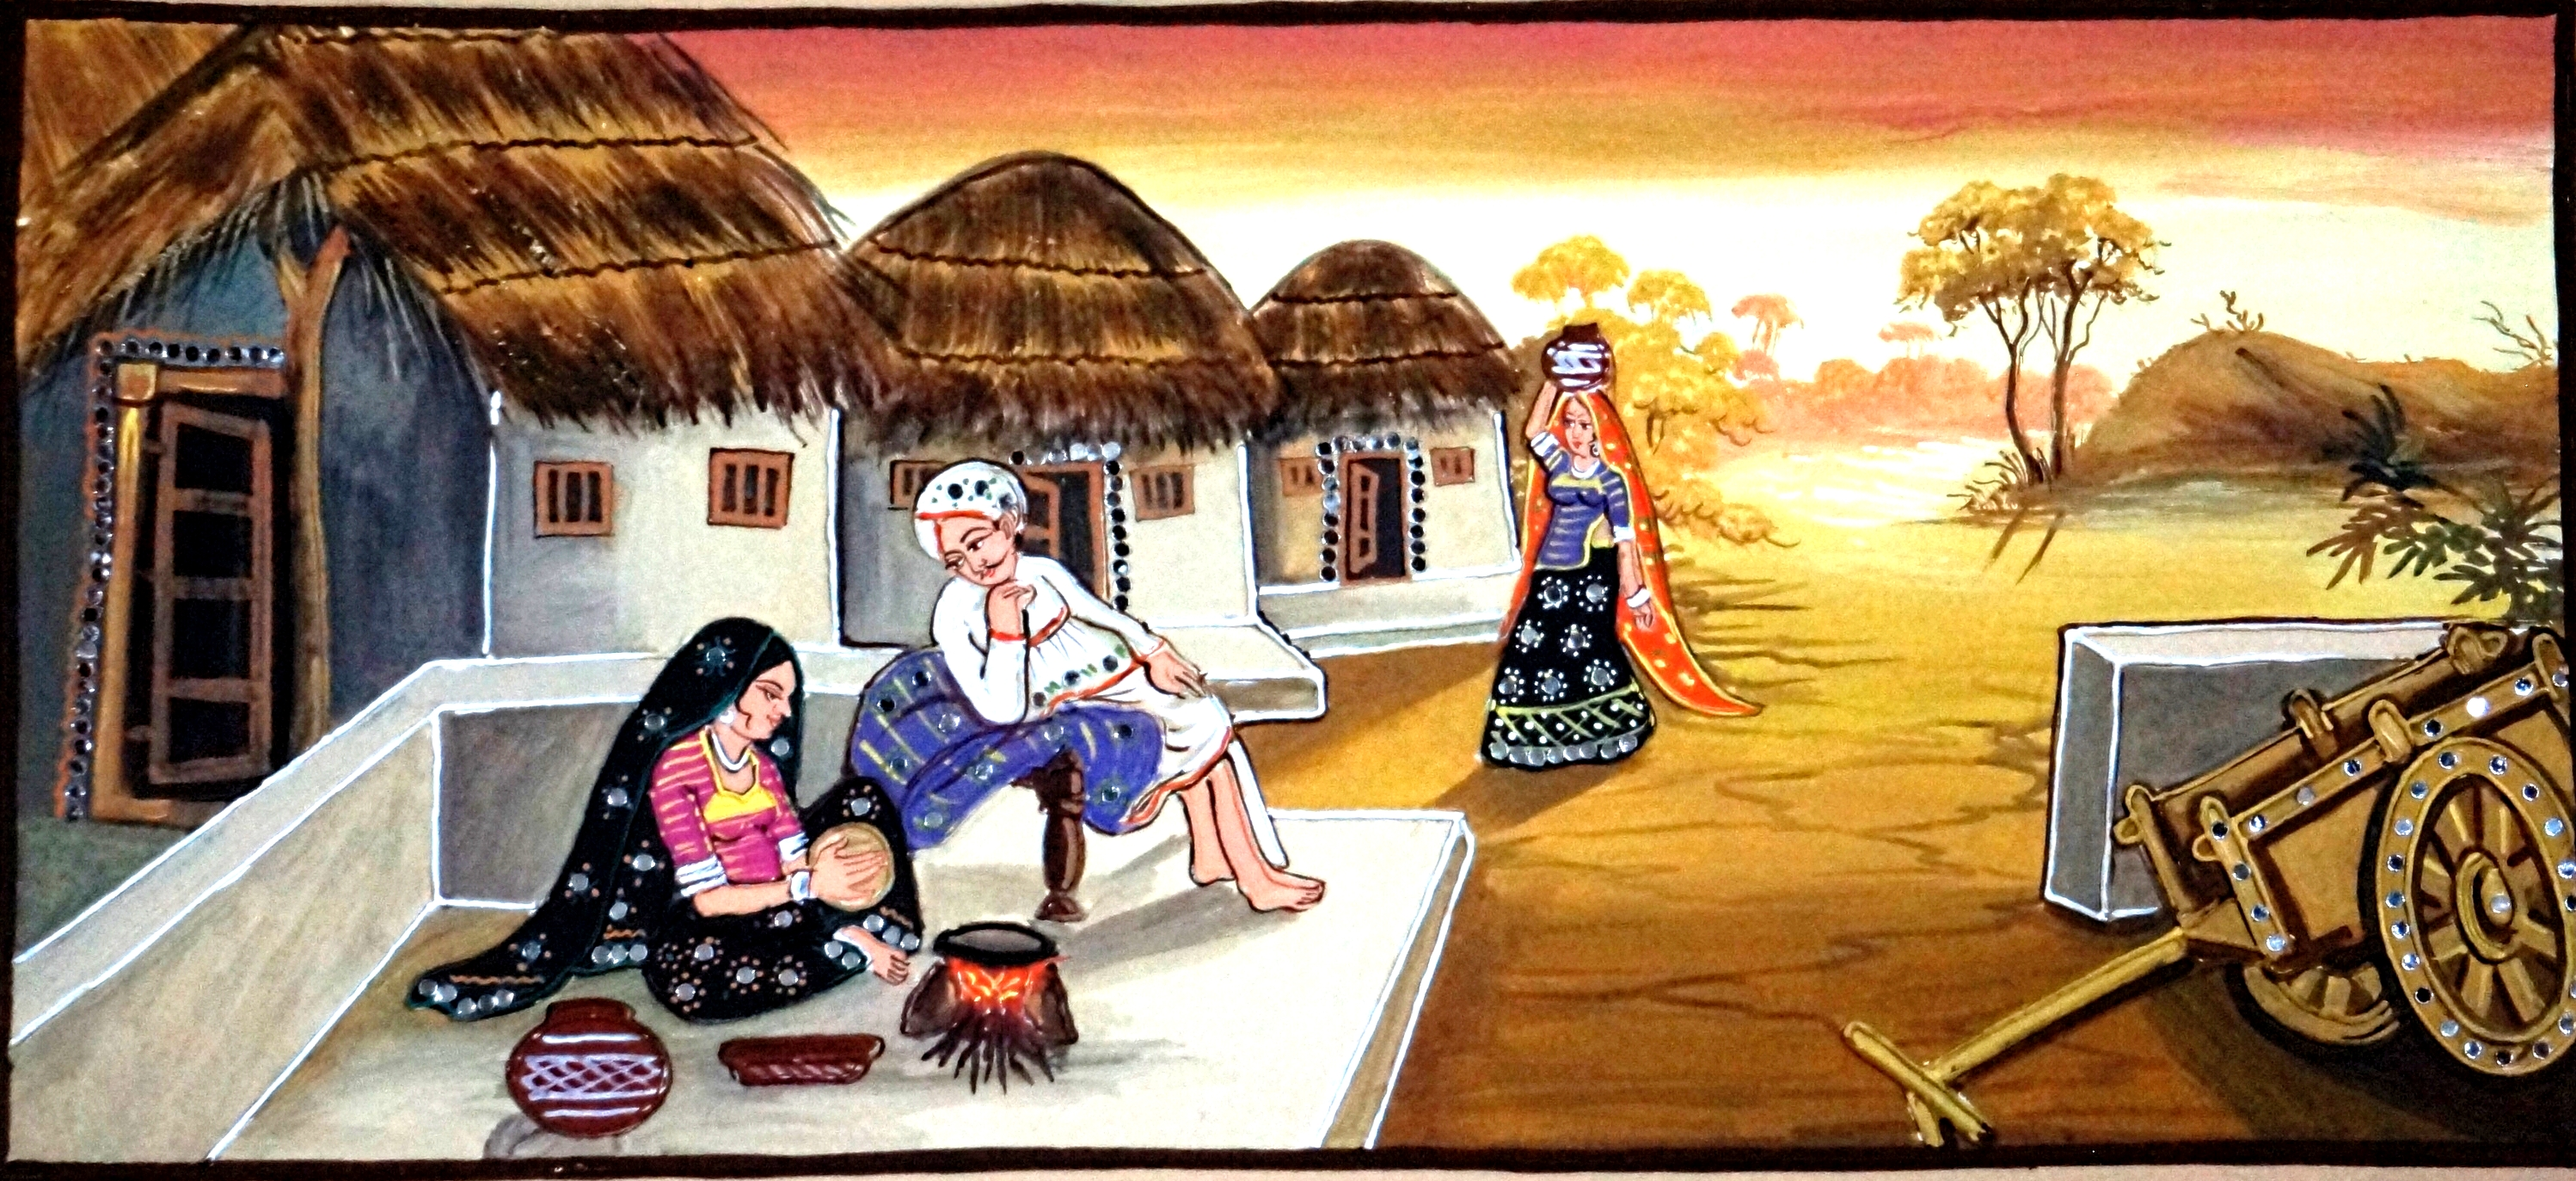 Indian village clipart images.